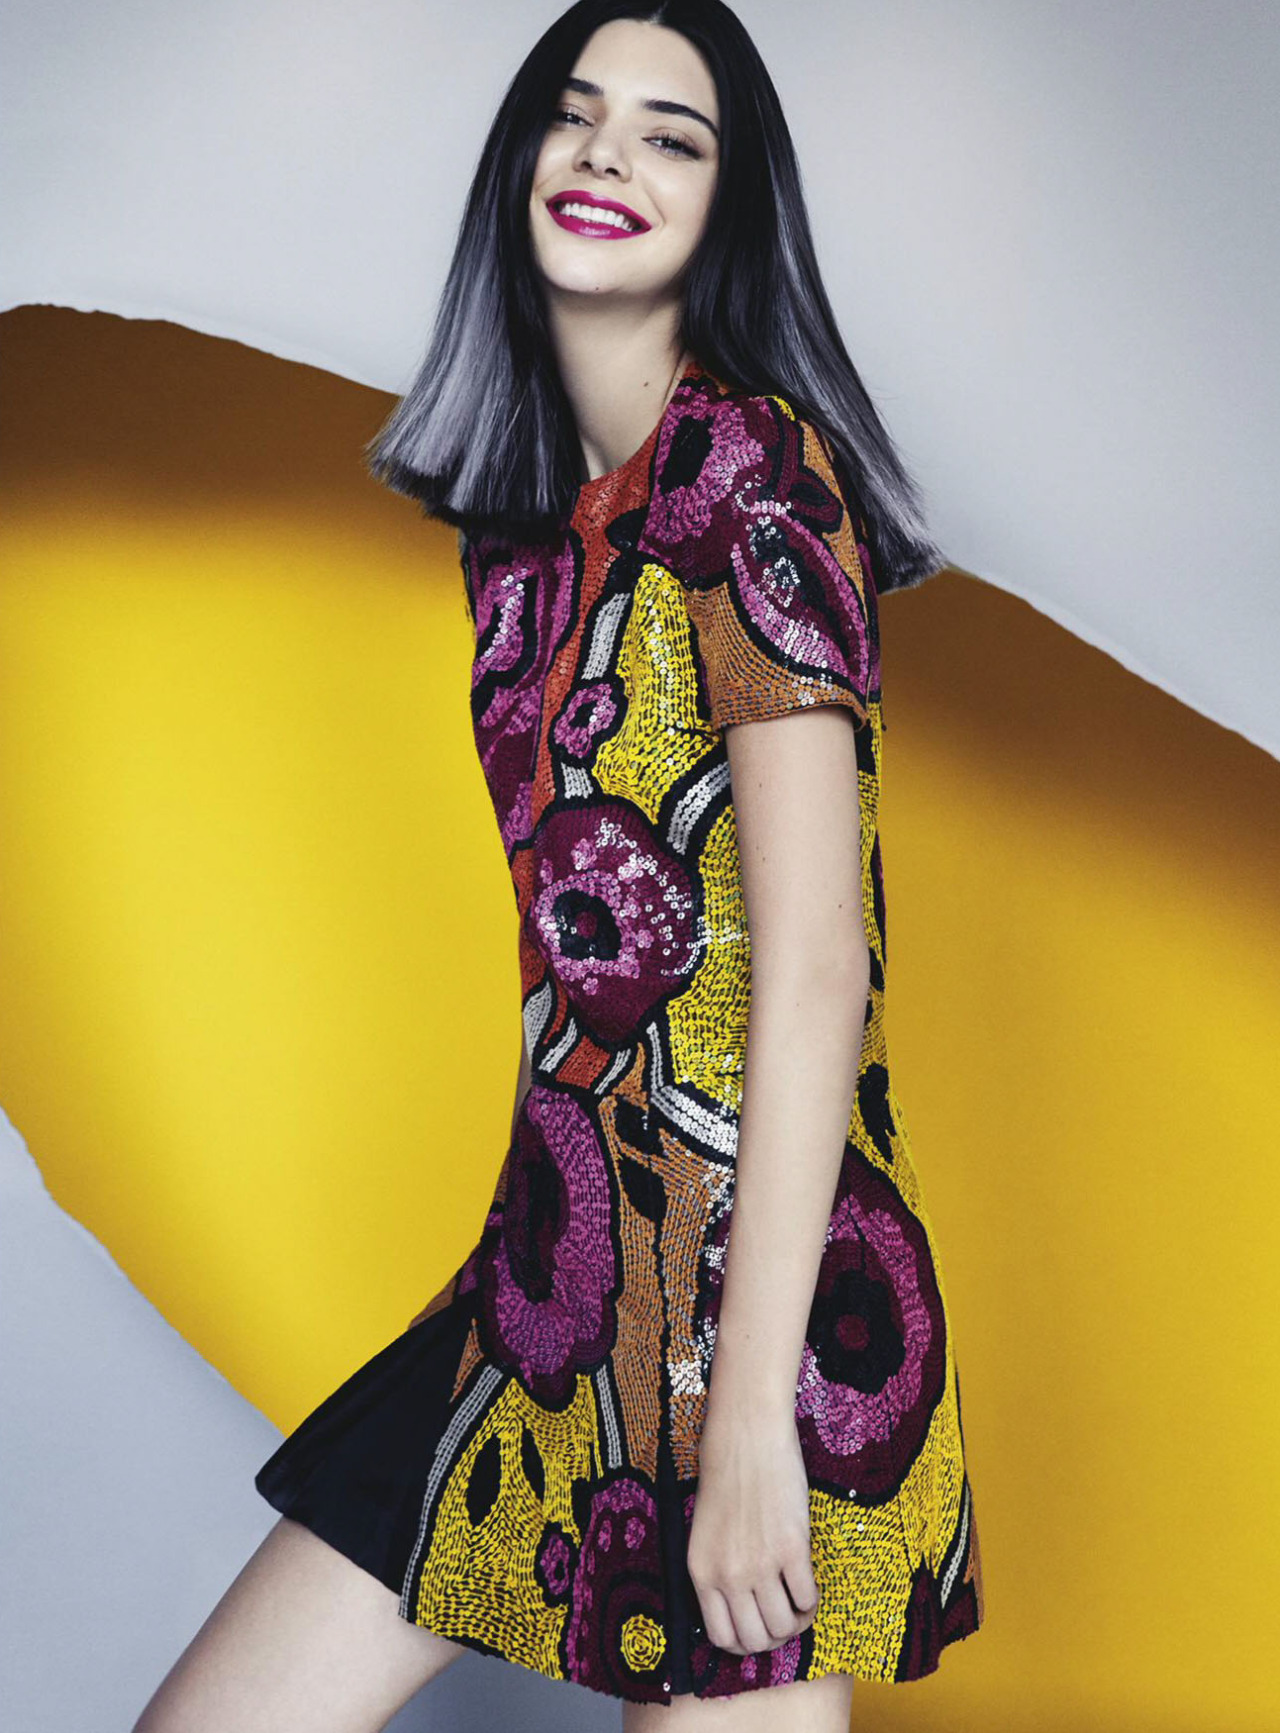 kendall-jenner-by-patrick-demarchelier-3